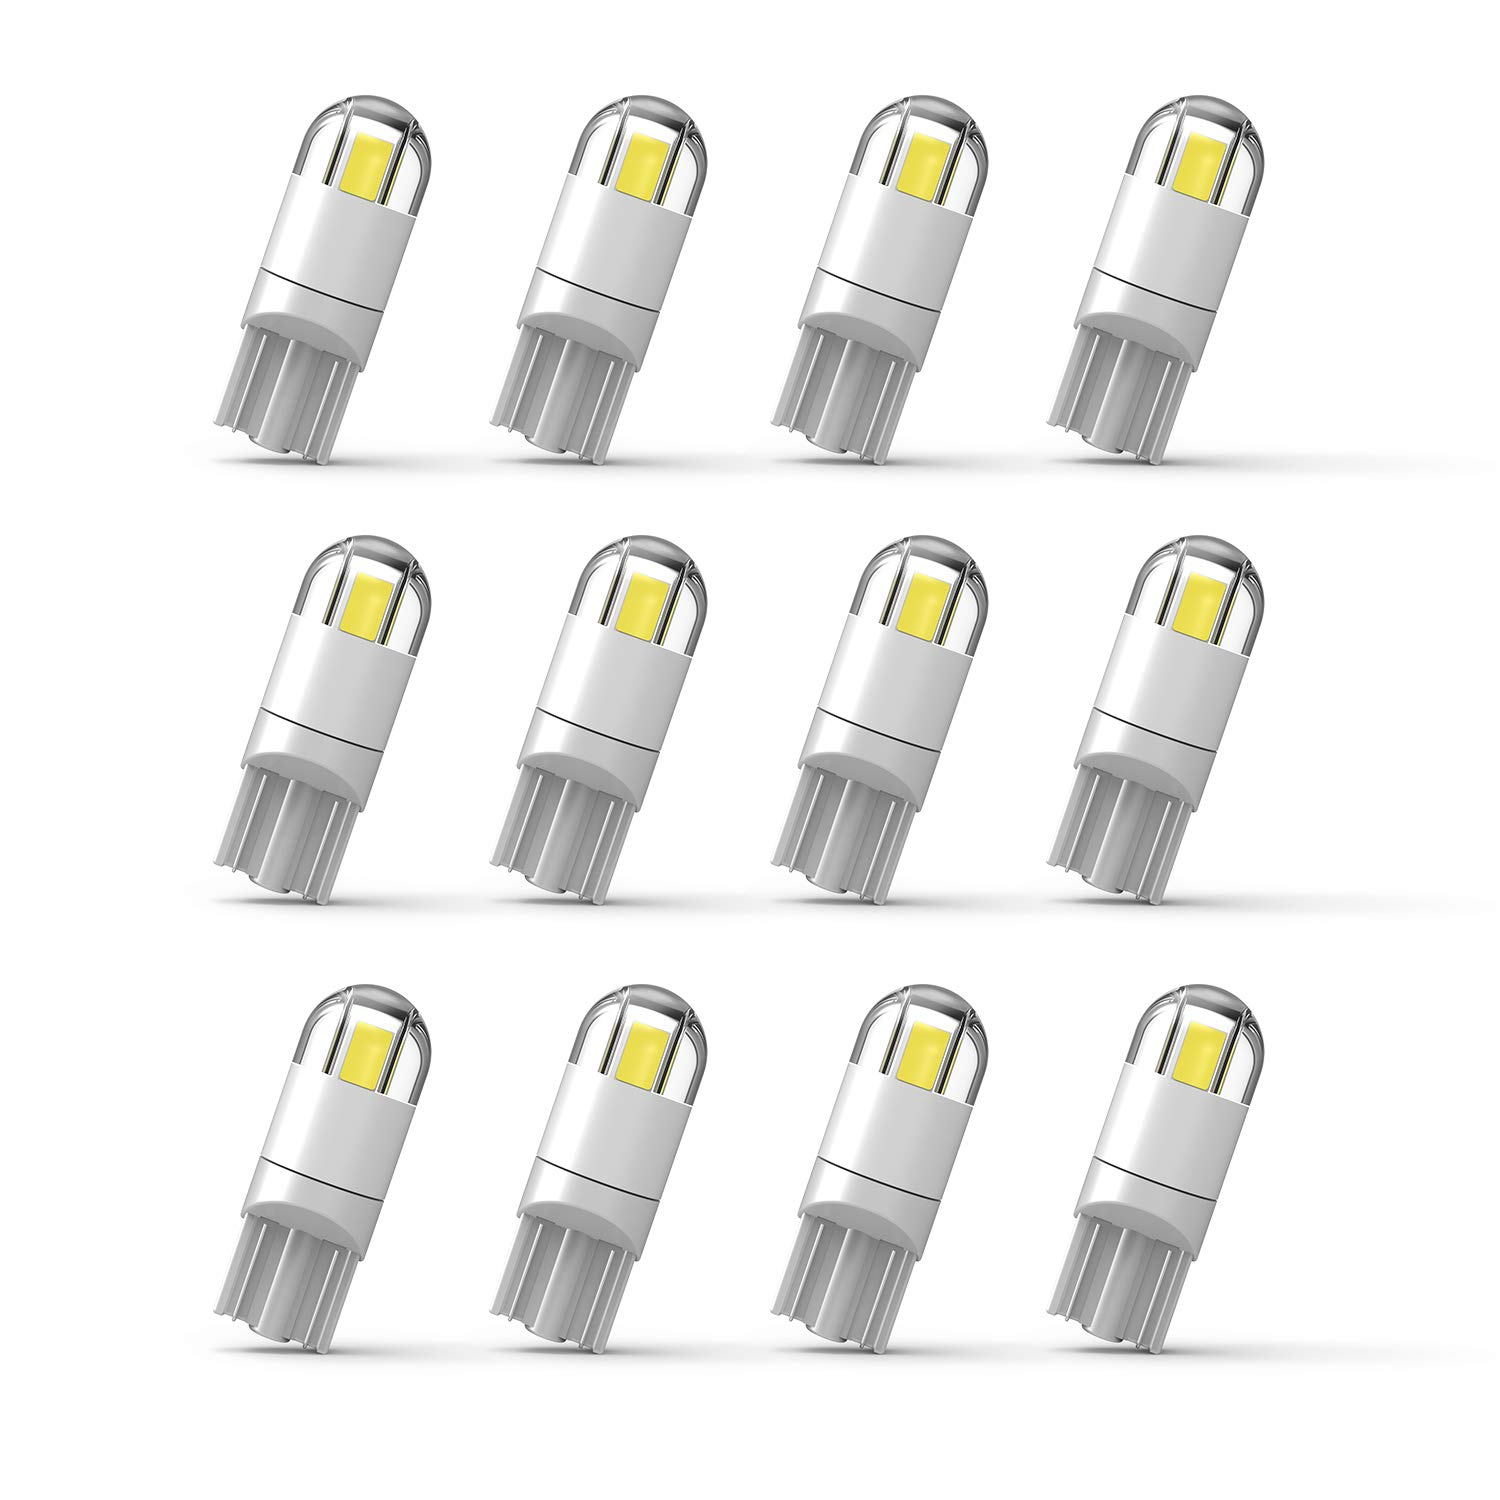 194 LED Bulb Extremely Bright 3030 Chipset T10 194 168 SMD W5W LED Wedge Light 1.5W 12V License Plate Light Turn Light Signal Light Trunk Lamp Clearance Lights (12pcs/pack)